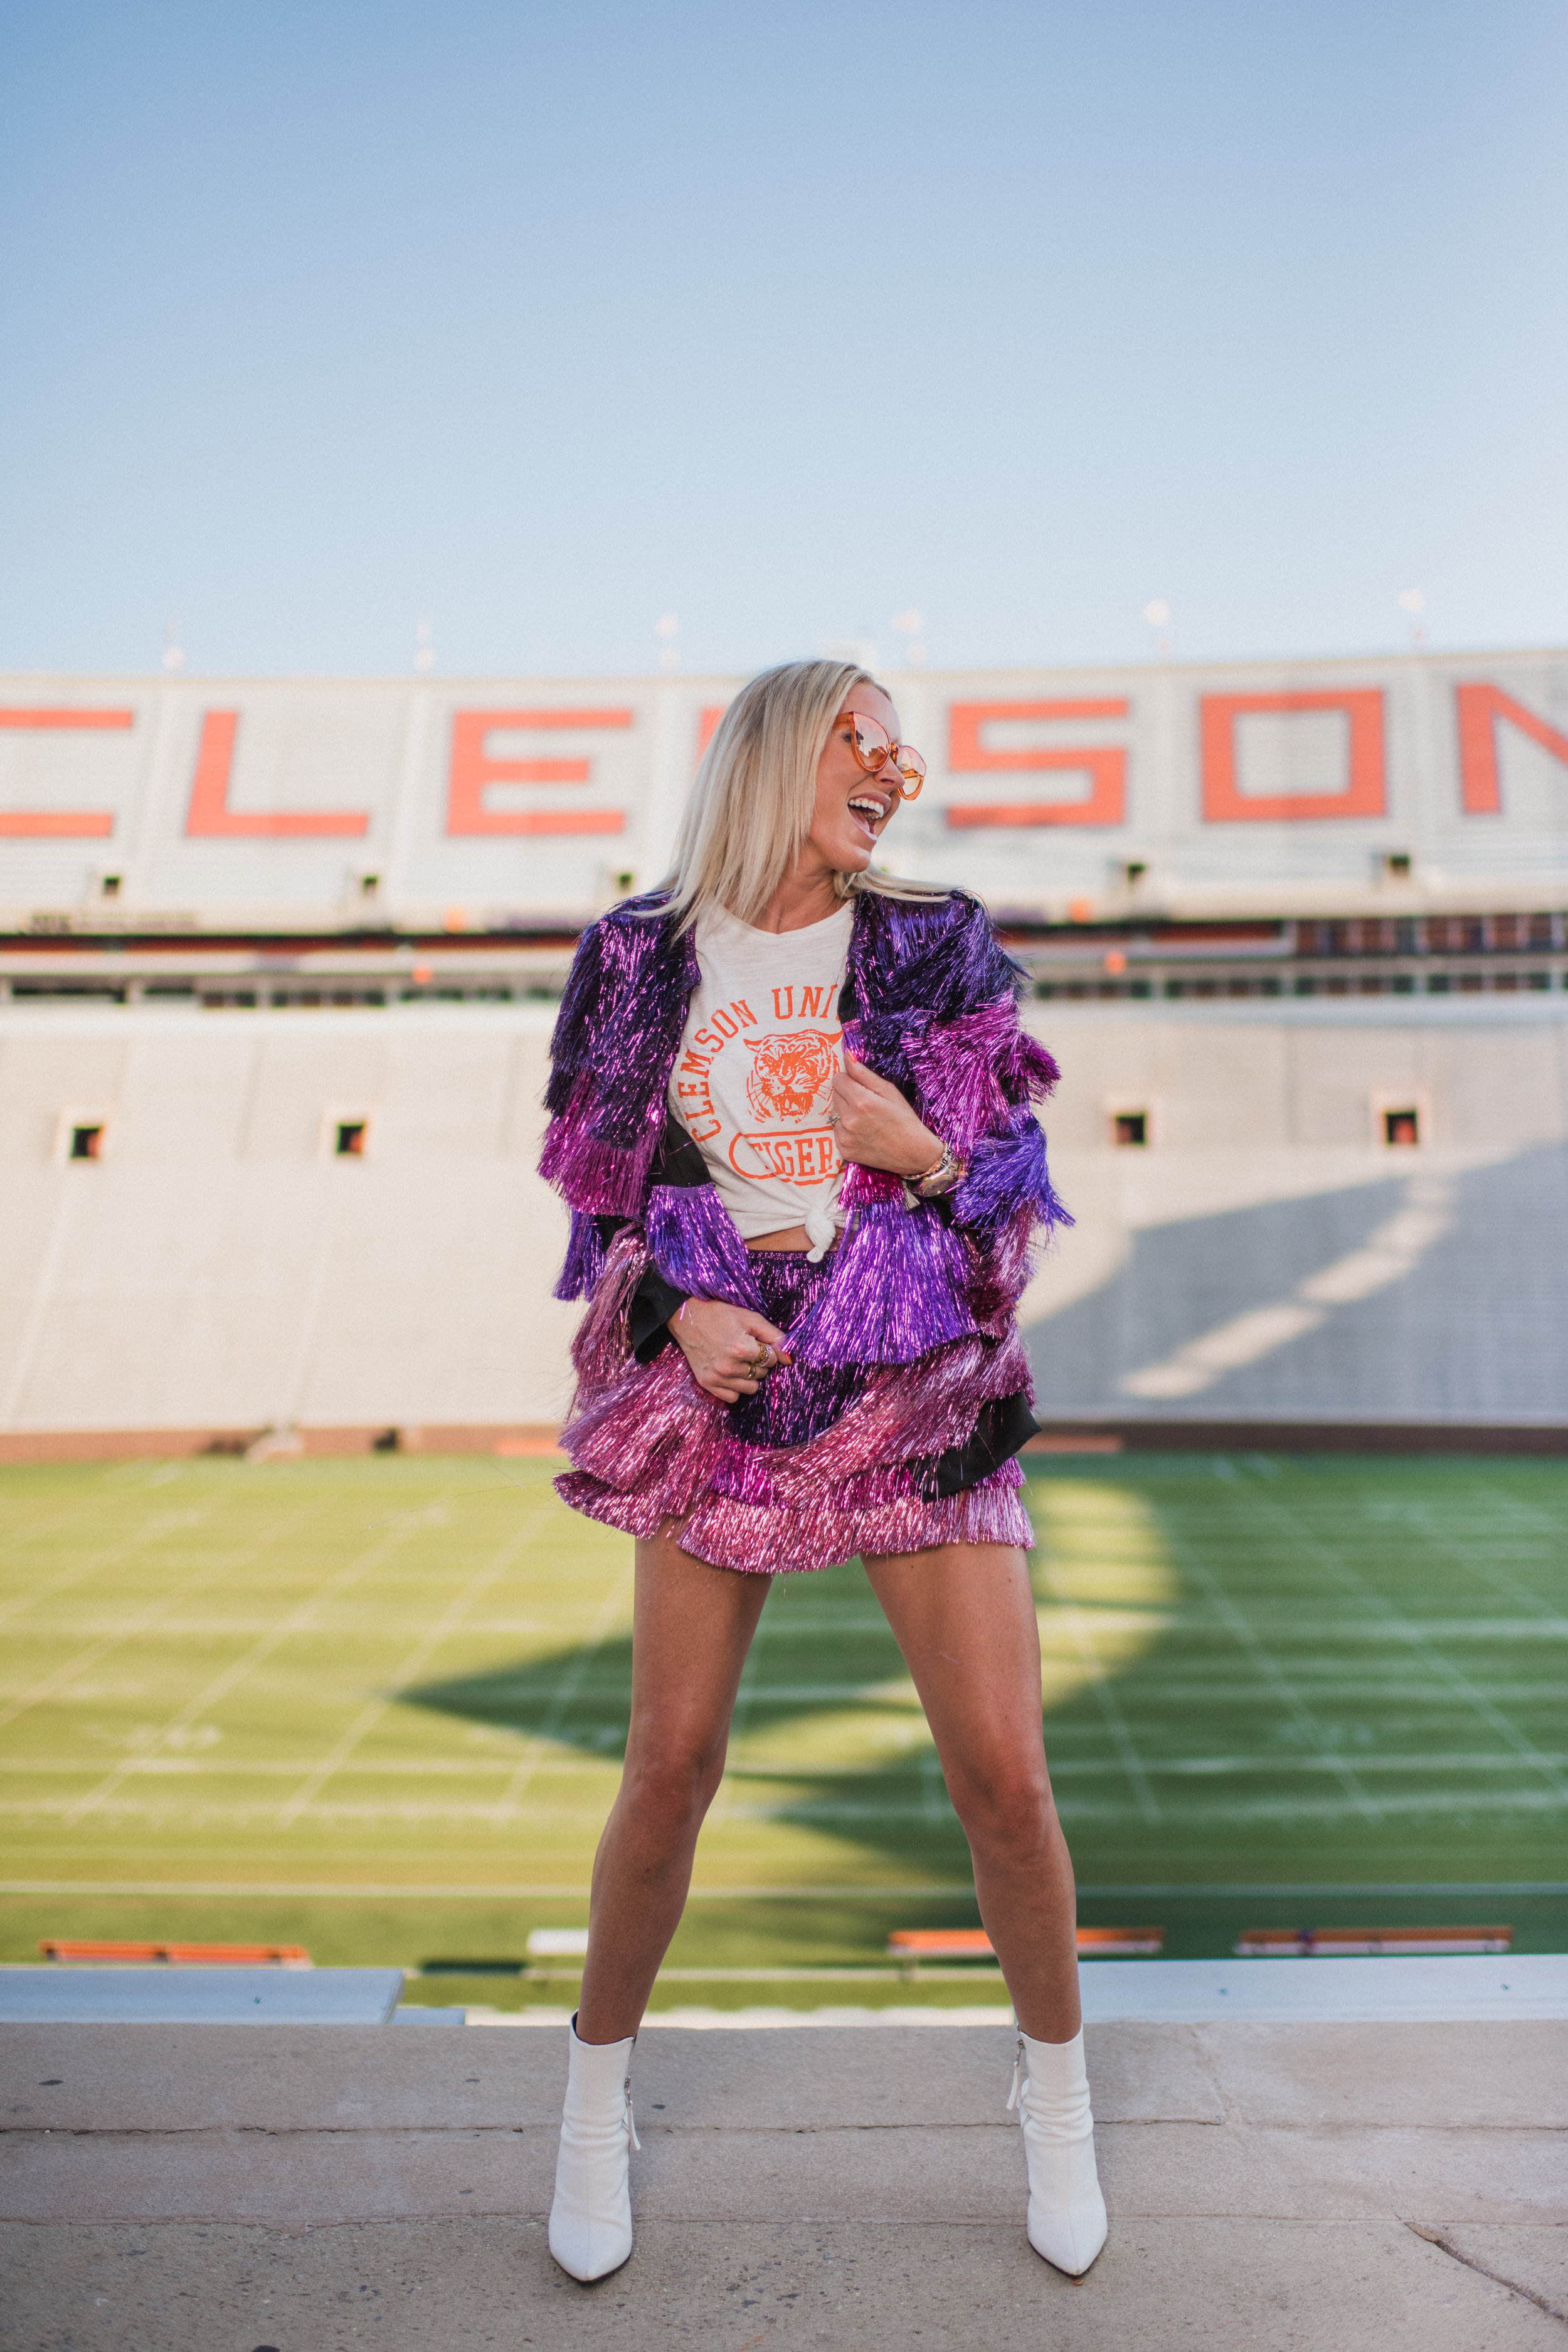 I'm here to bring Dolly Parton to Death Valley. - I may also touch on how having the Natty in California was the worst.The jacket and shorts pictured are from NastyGal. I was recently at a dinner with our dear friend and devoted Gamecock fan, Lauren Metts. I was telling her about my opportunity to shoot this blog in Death Valley. She exclaimed she had seen the perfect outfit!! She pulled out her phone and showed me a screenshot of this outfit, which I already had packed to bring to the shoot the next day.